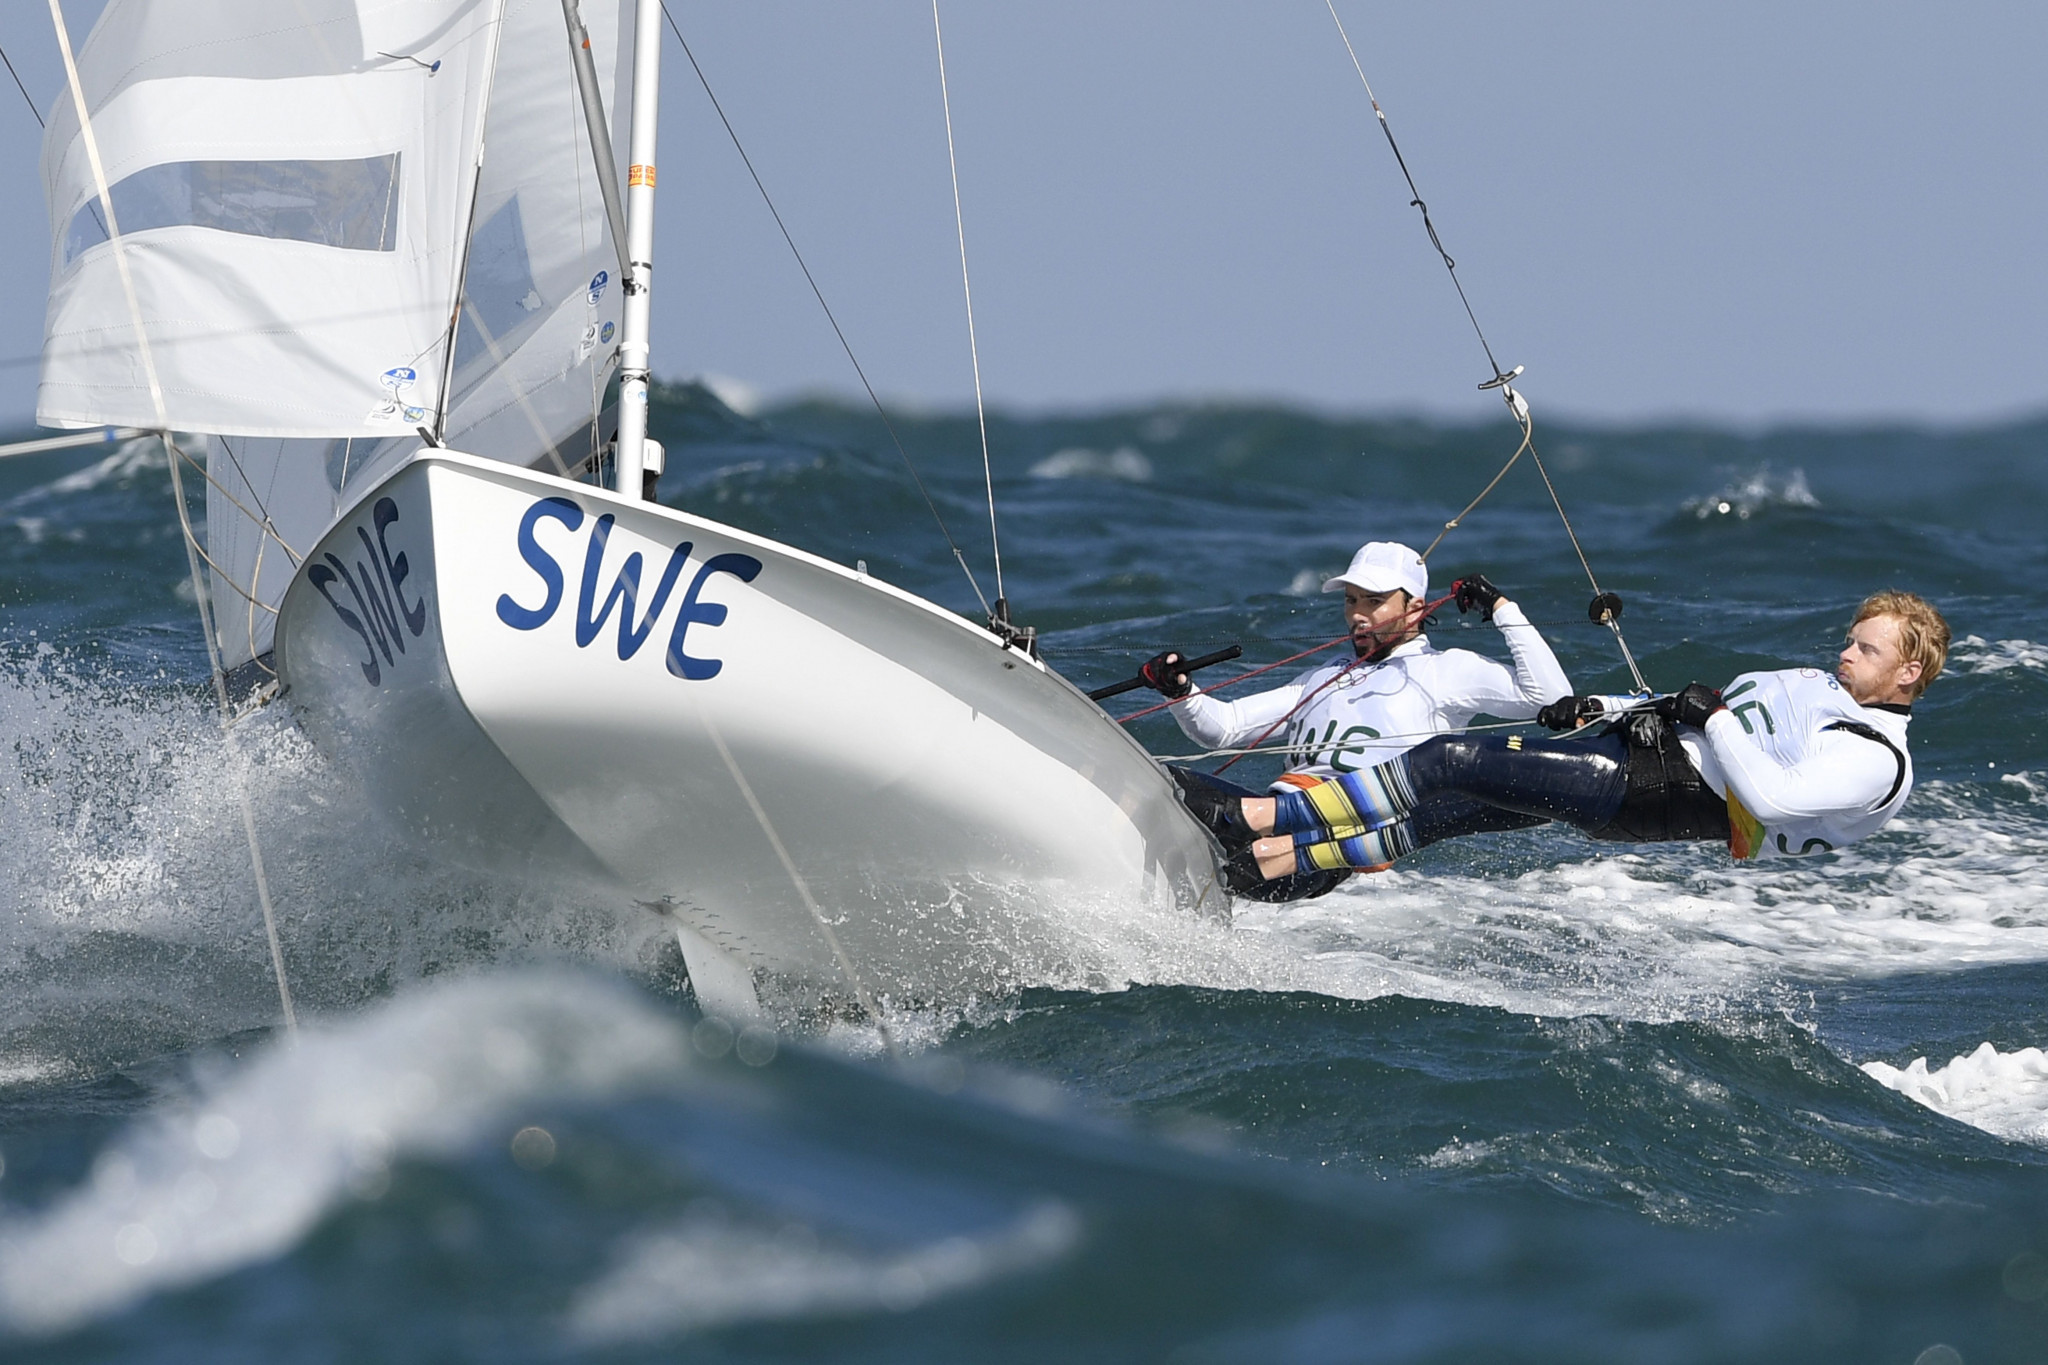 Swedish duo take lead in men's event as racing begins at 470 World Championships at Tokyo 2020 venue